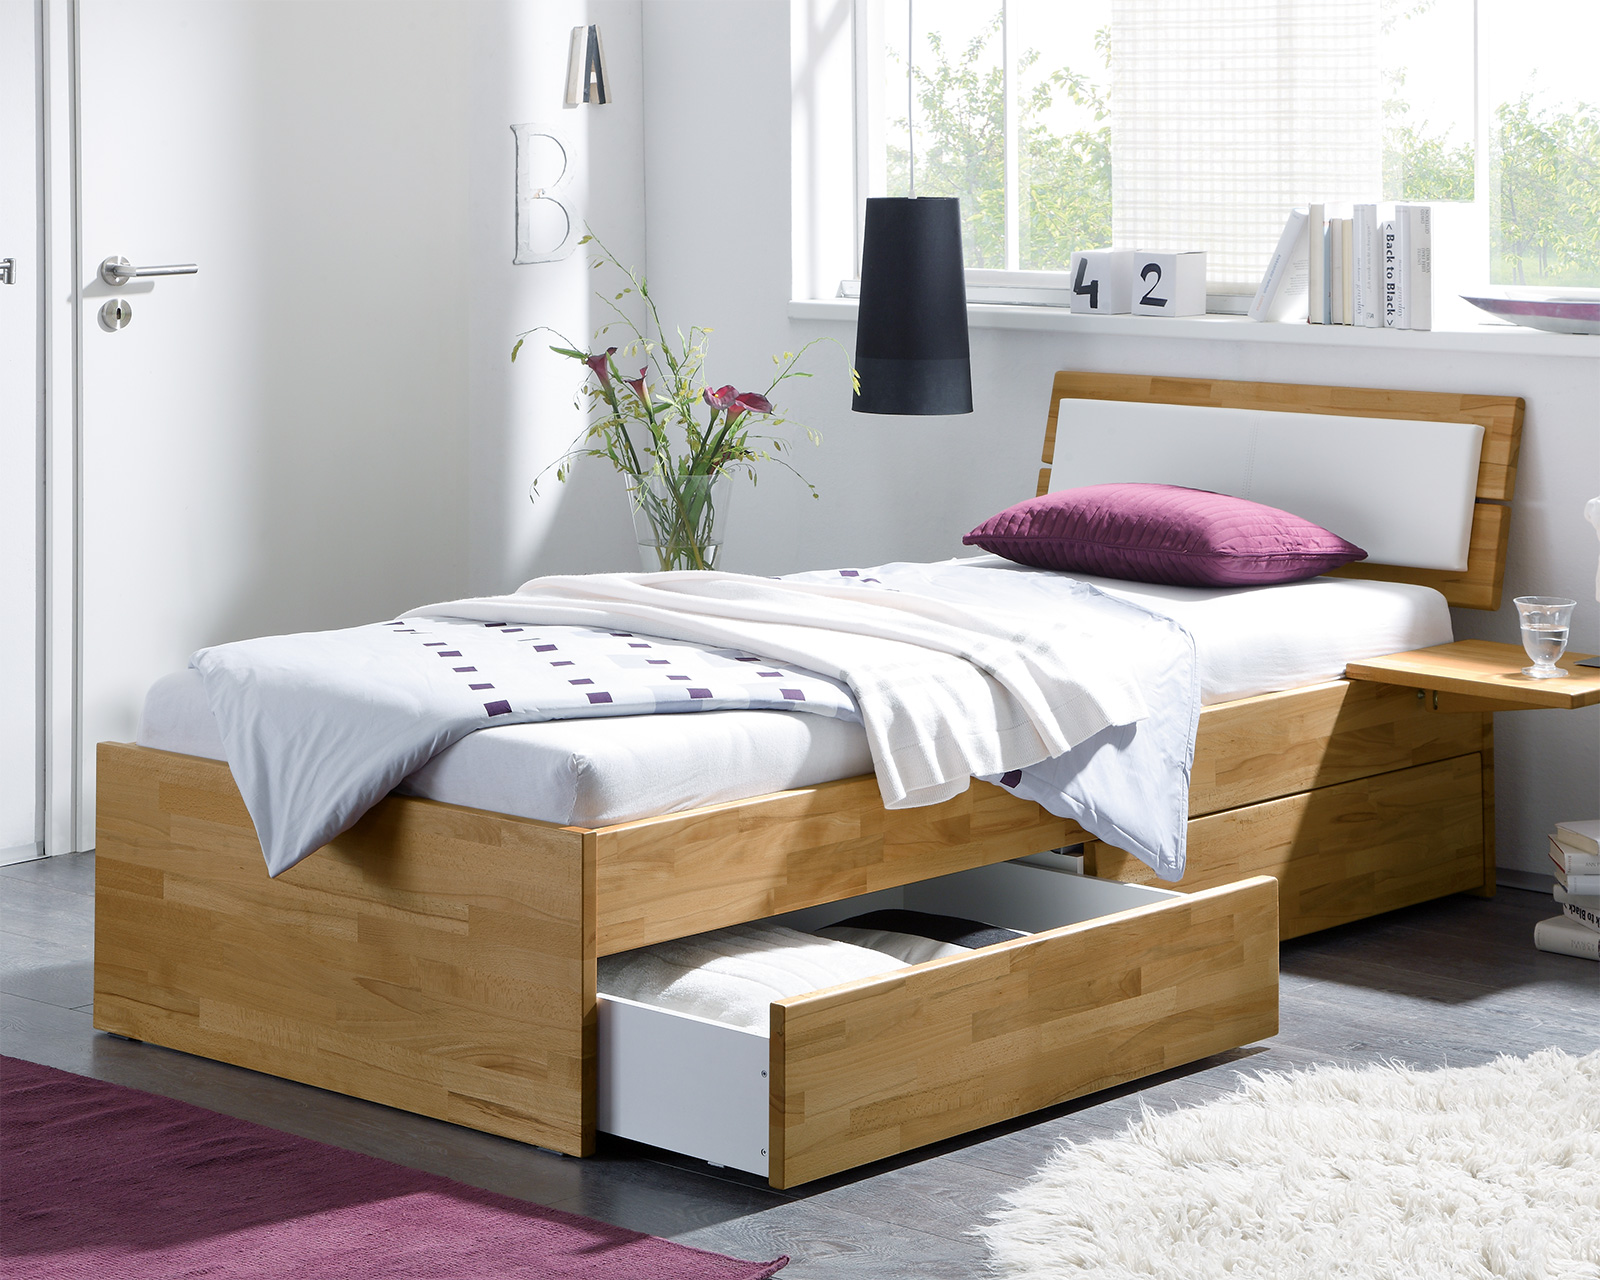 einzelbett mit schubladen neuesten design. Black Bedroom Furniture Sets. Home Design Ideas